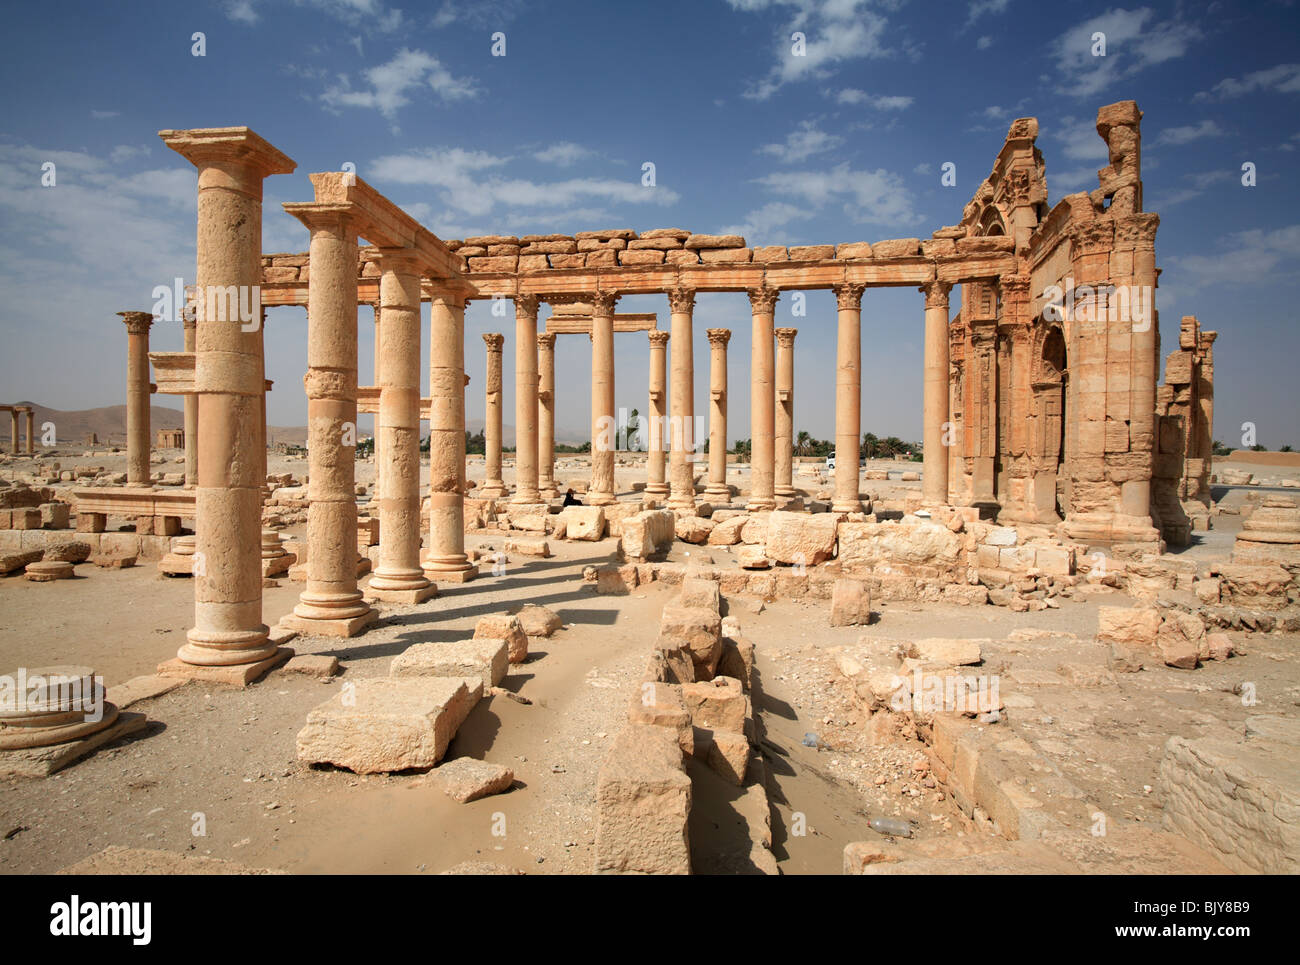 Colonnade at the ruins of Palmyra, Syria - Stock Image